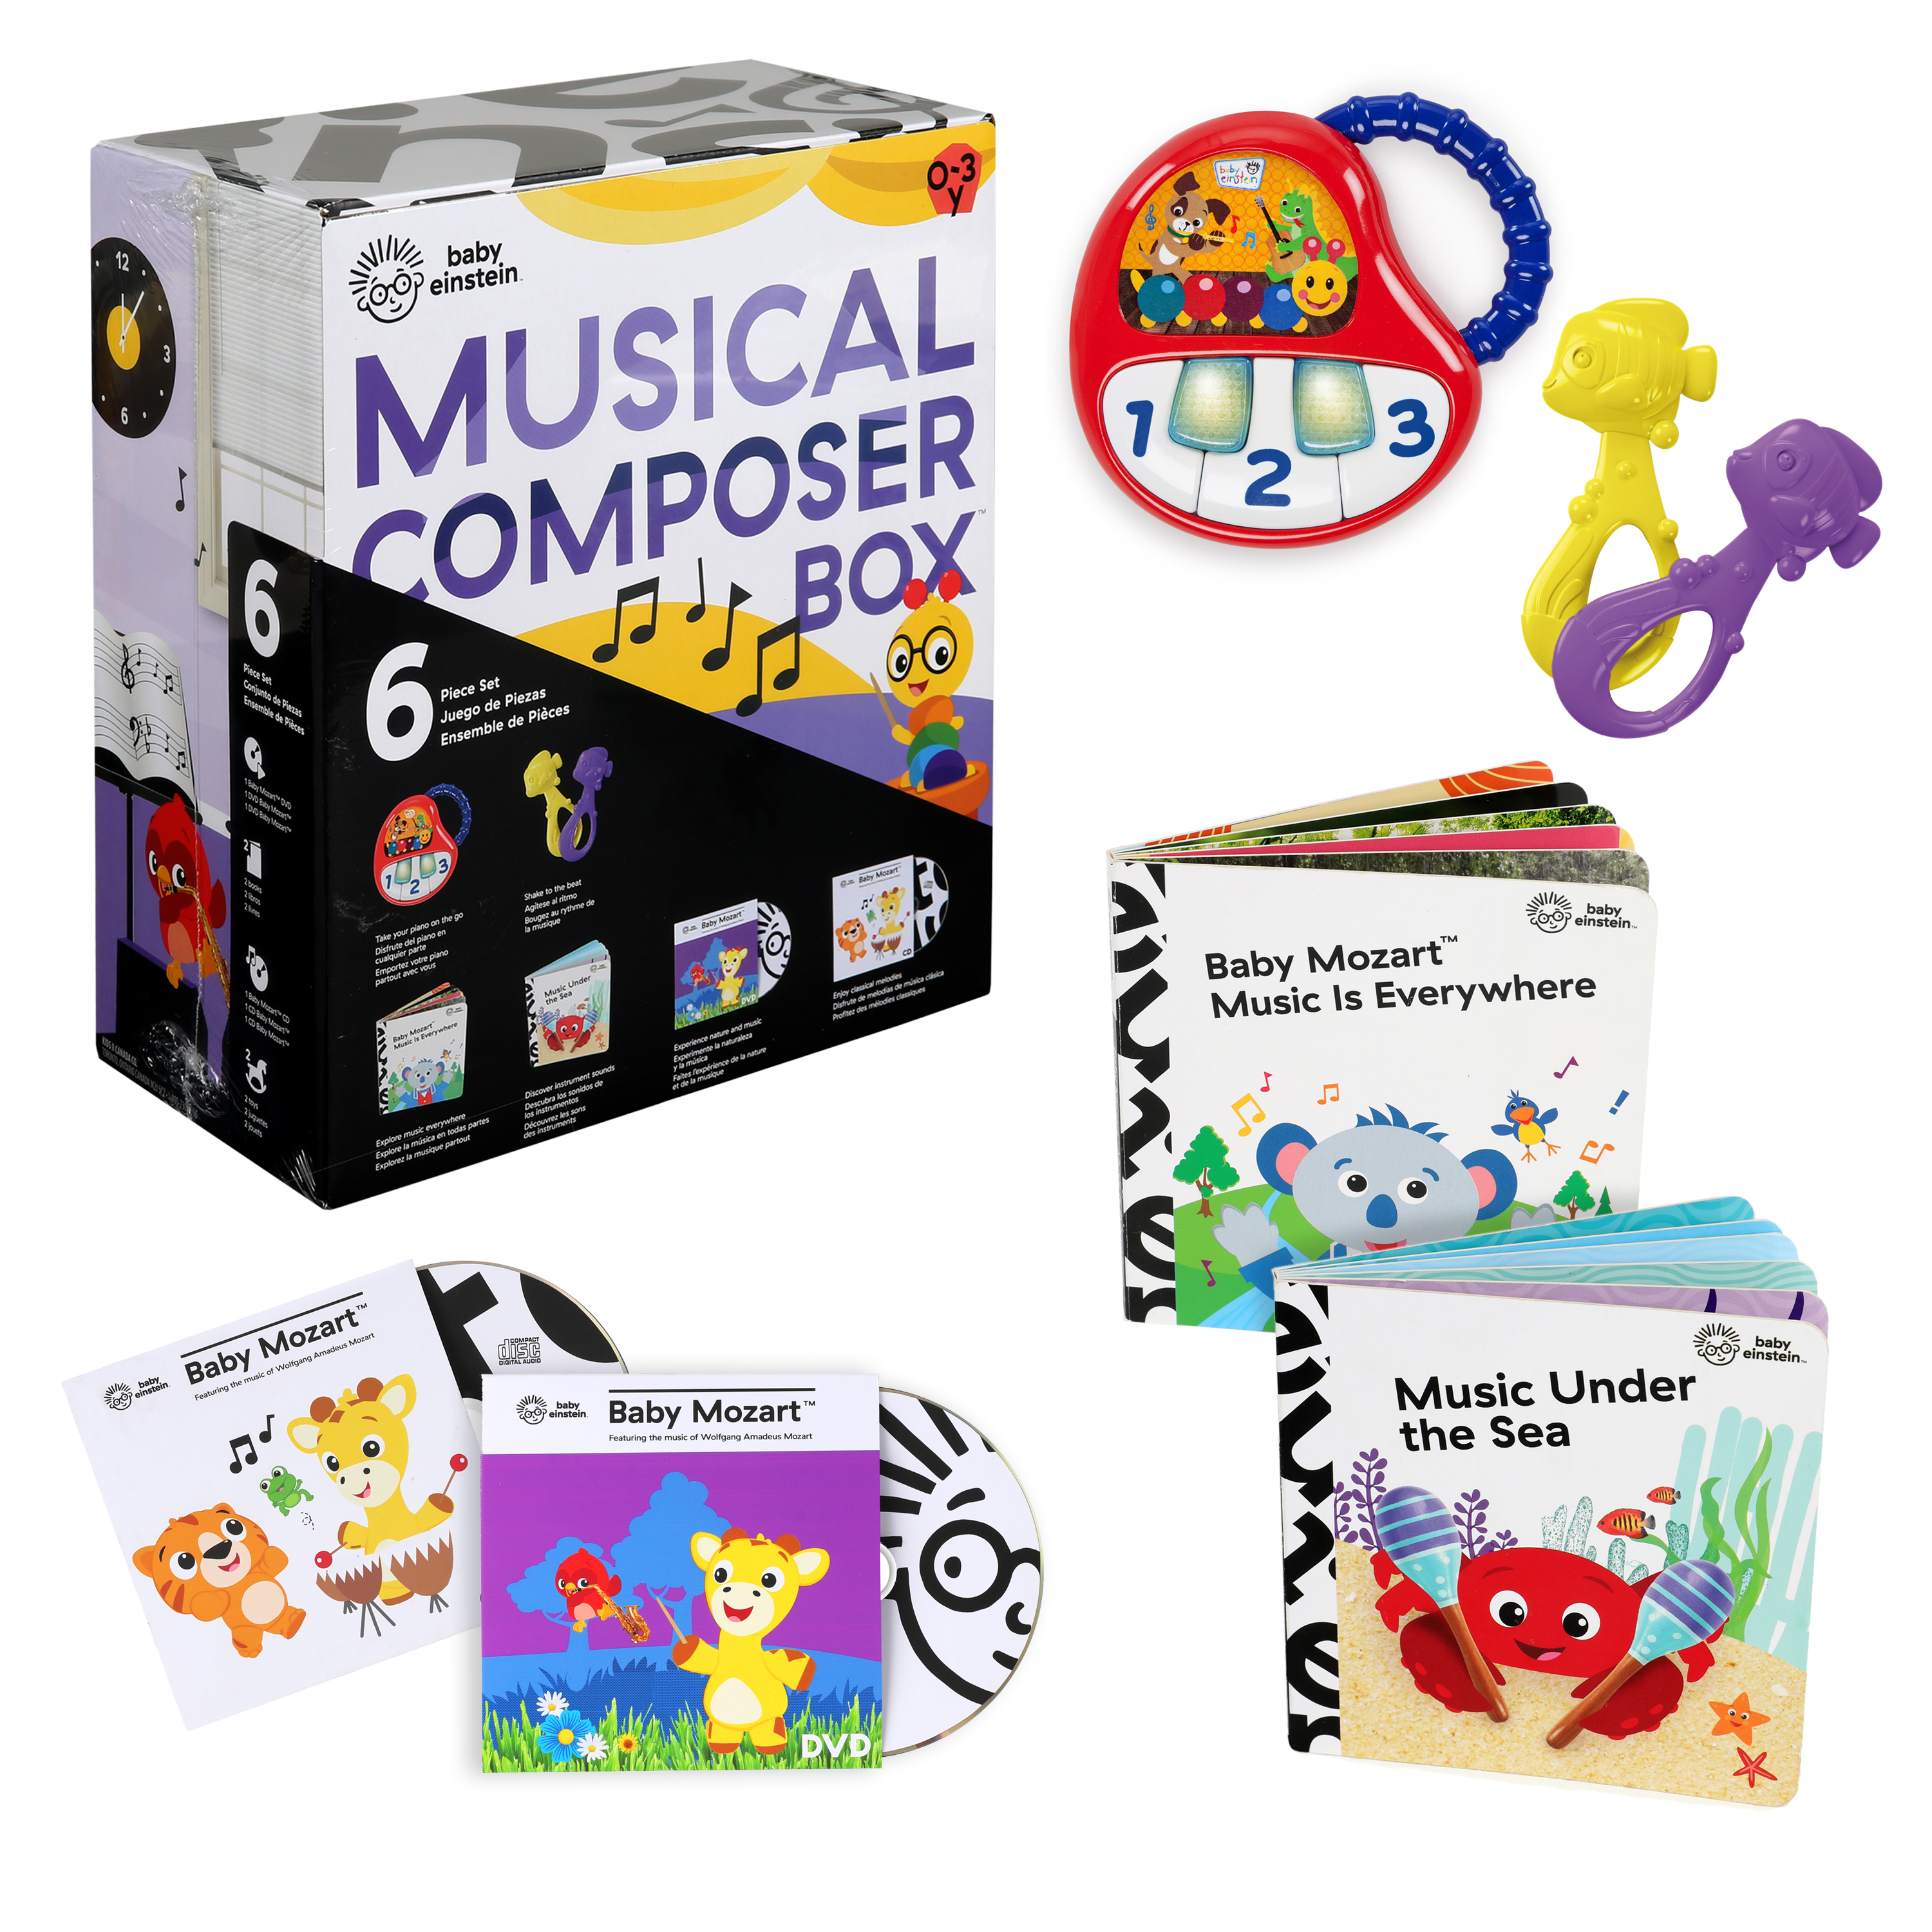 Musical Composer Box